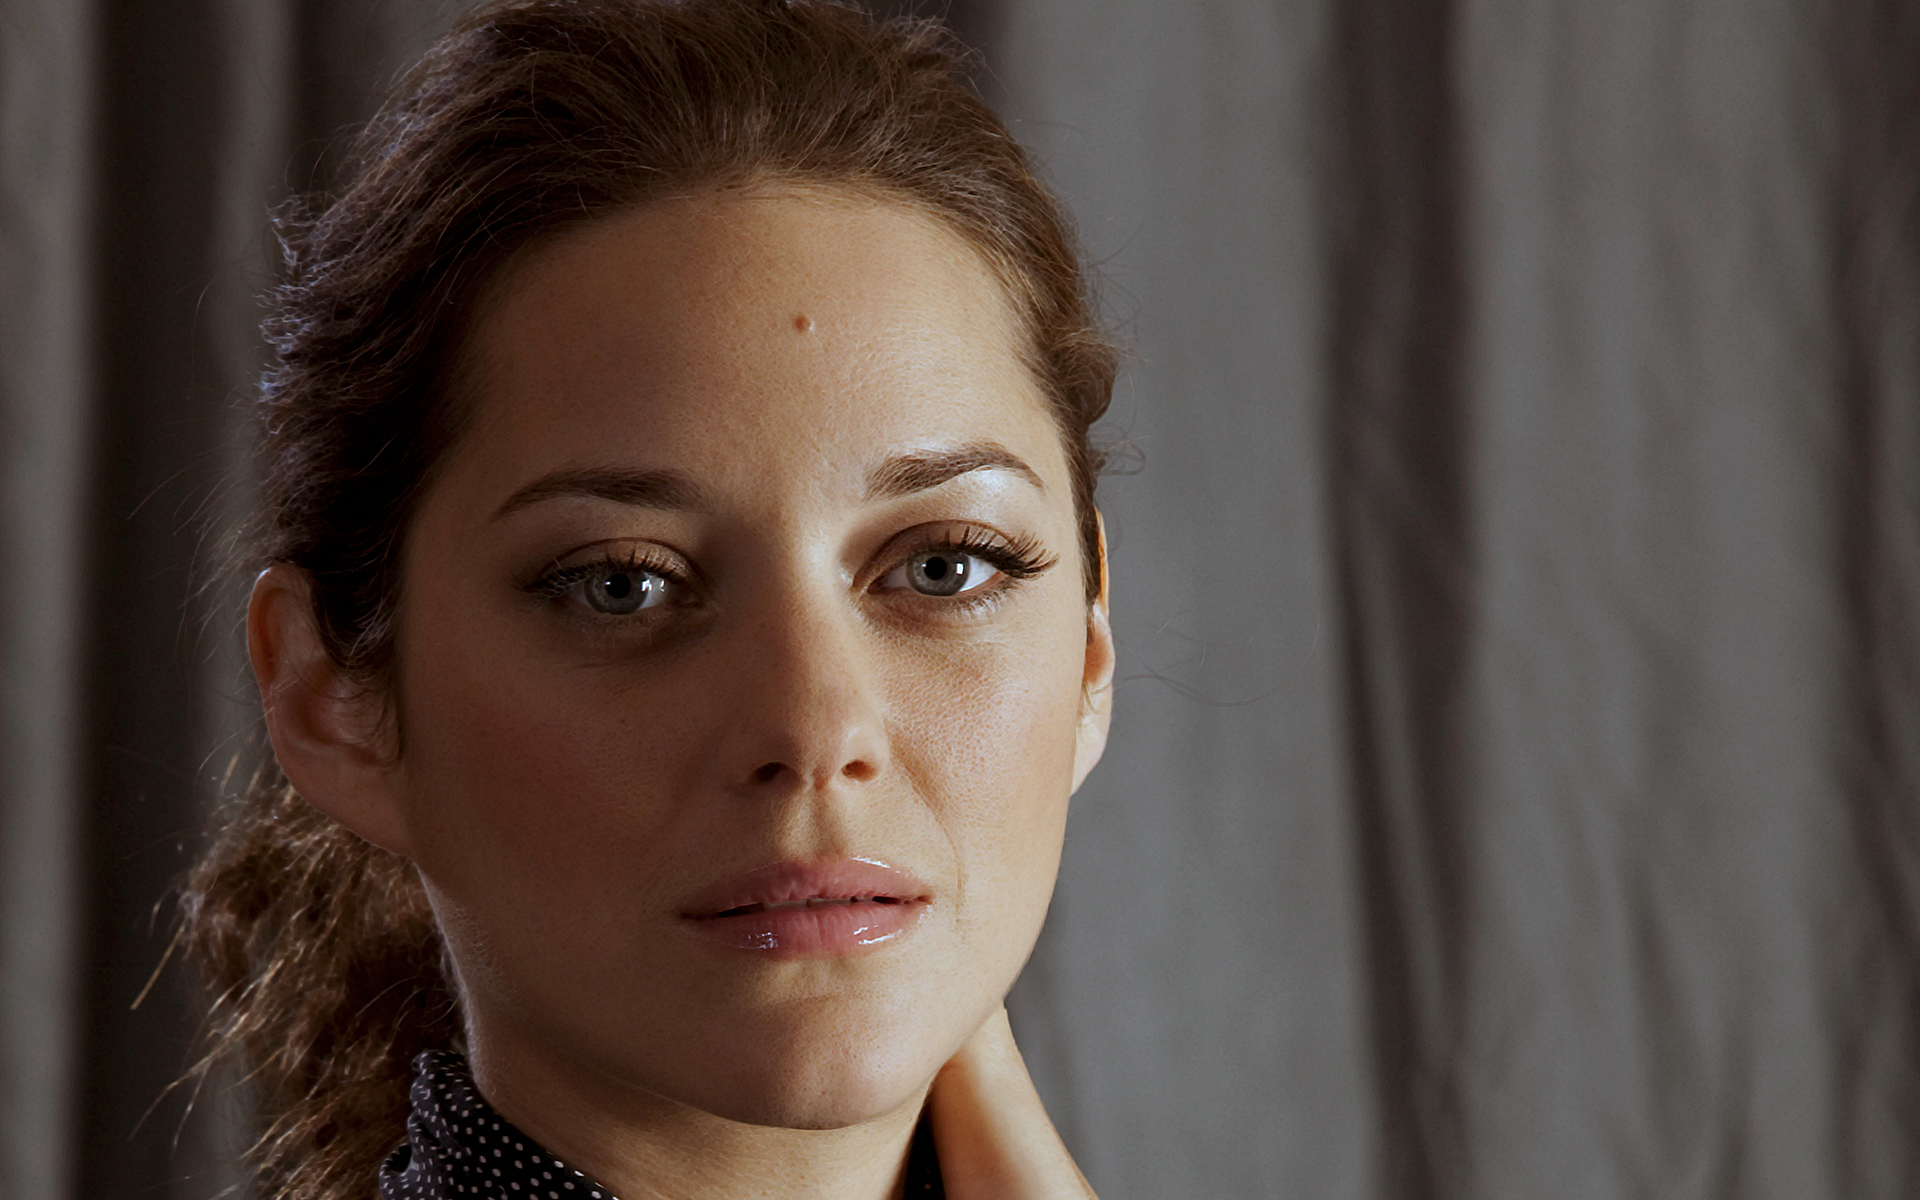 Full View and Download Marion Cotillard Wallpaper 8 with resolution of 1212